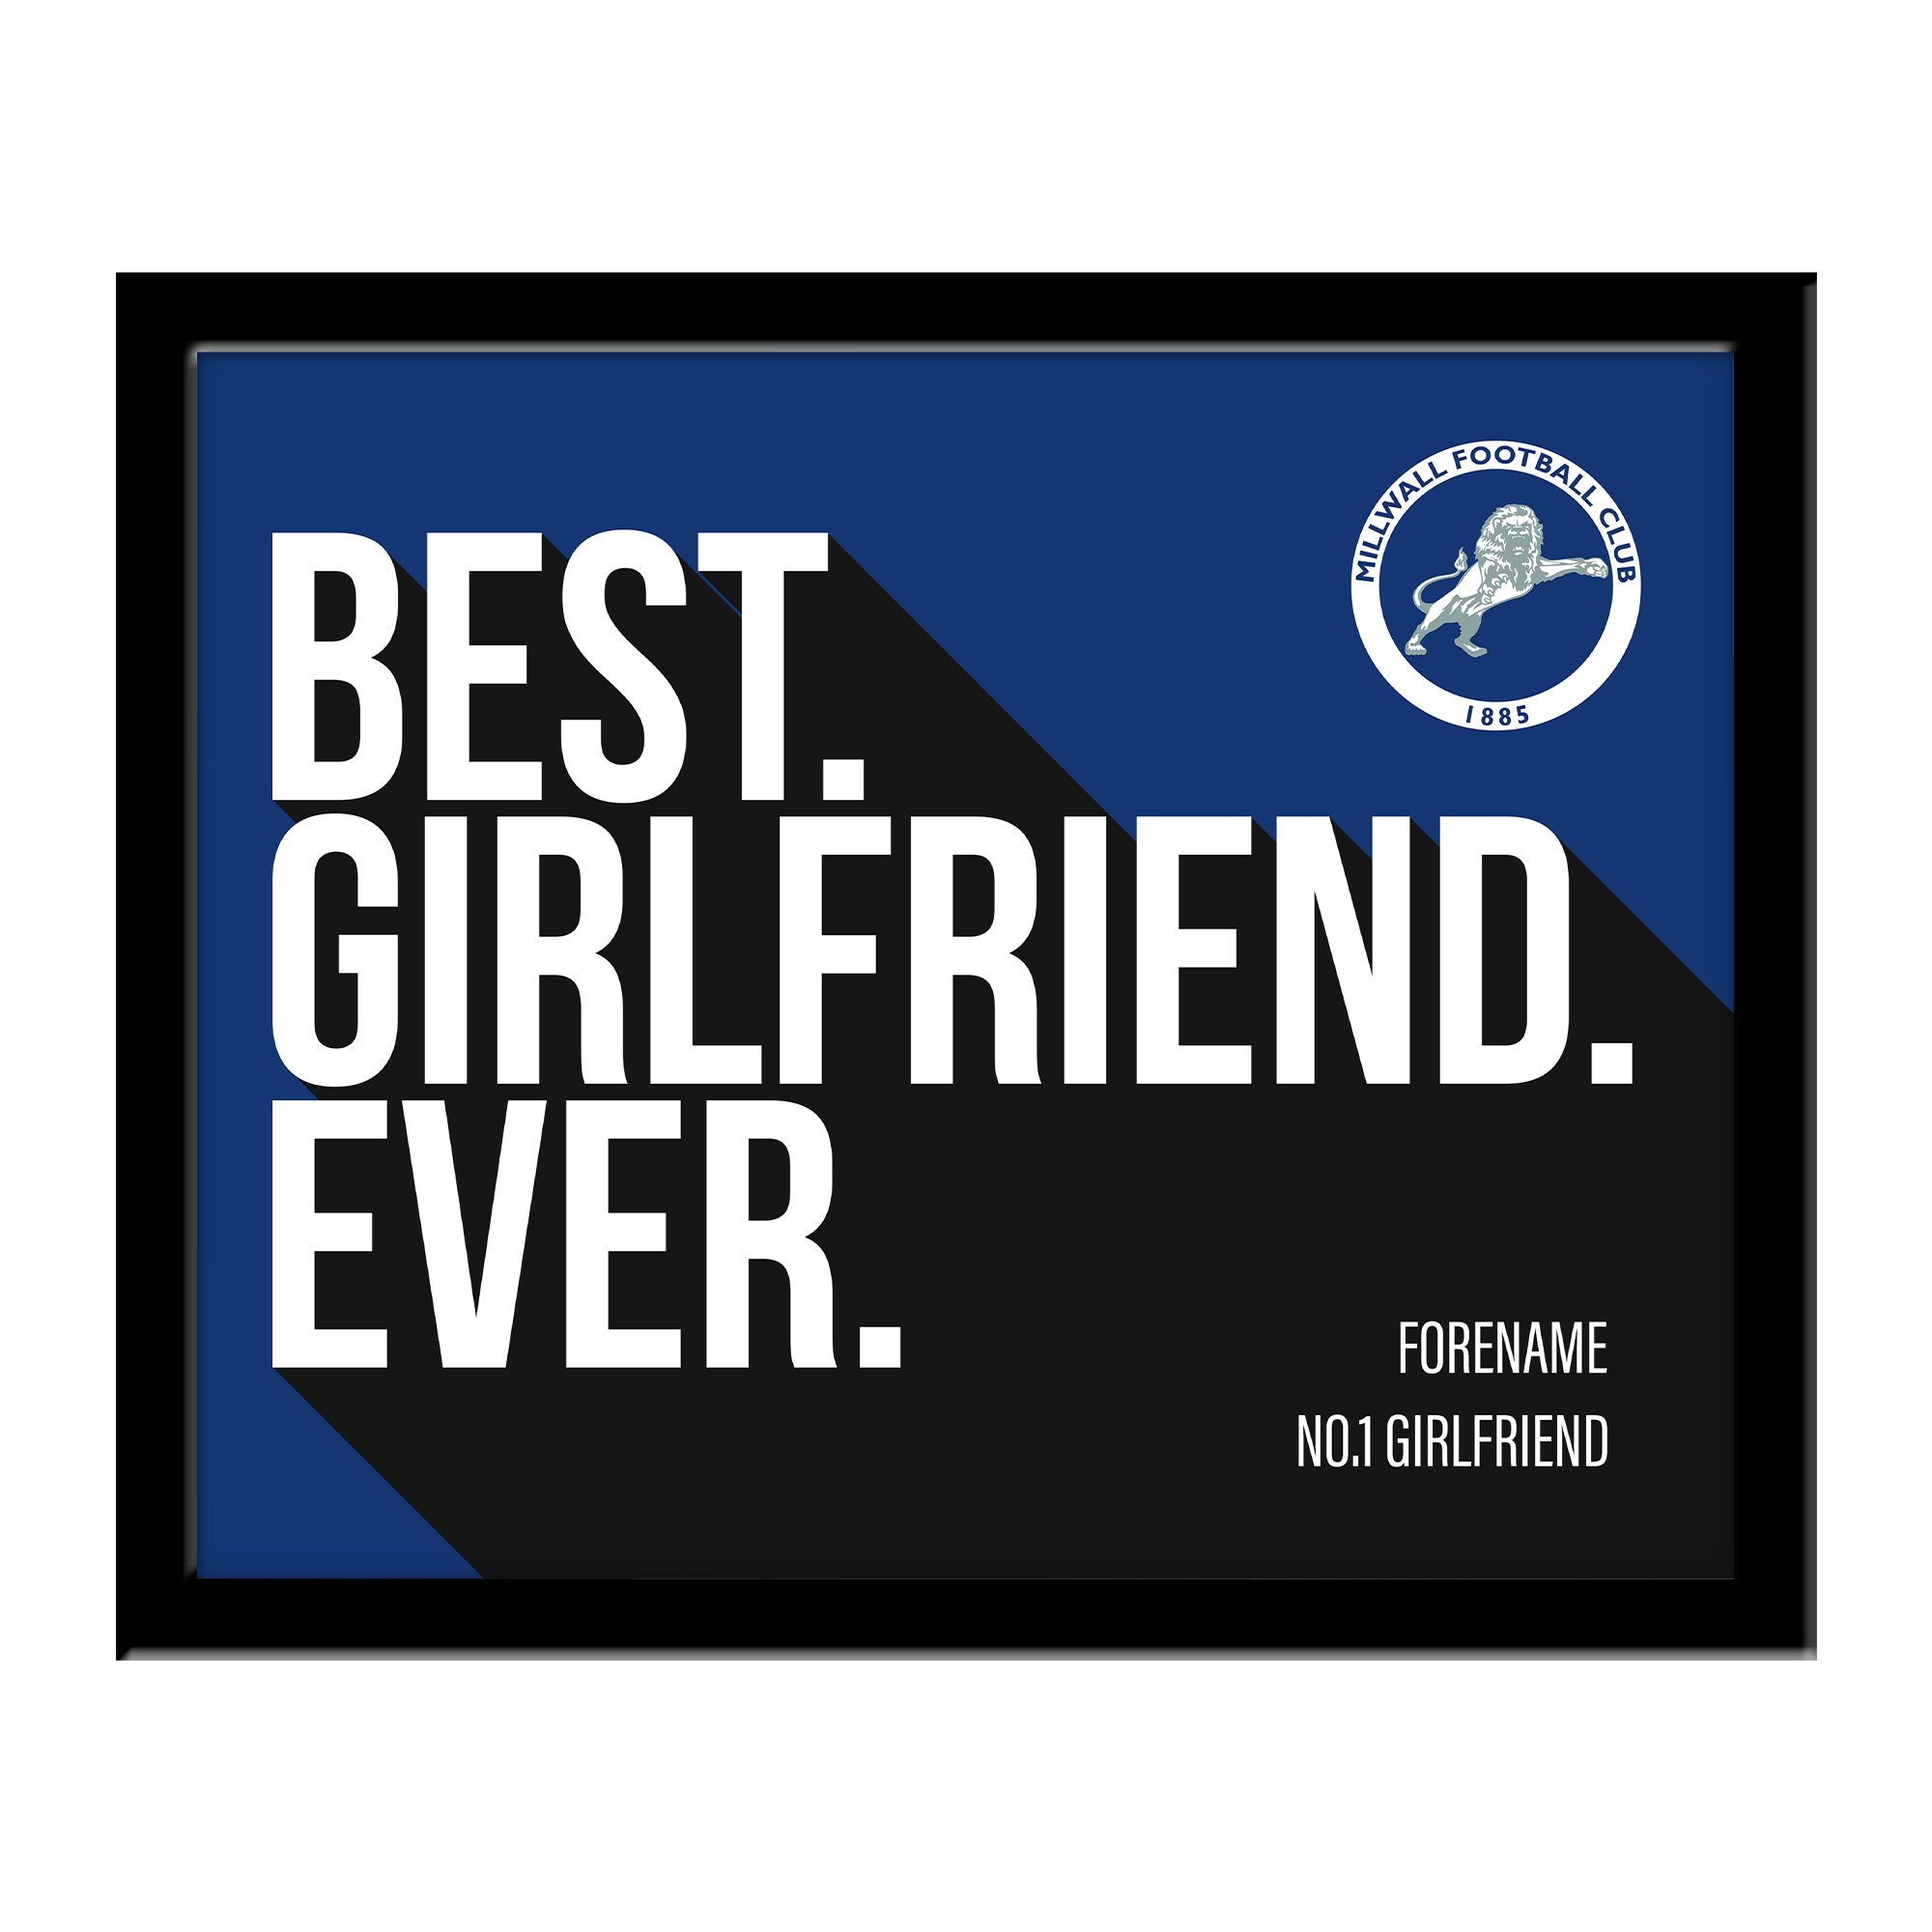 Millwall Best Girlfriend Ever 10 x 8 Photo Framed